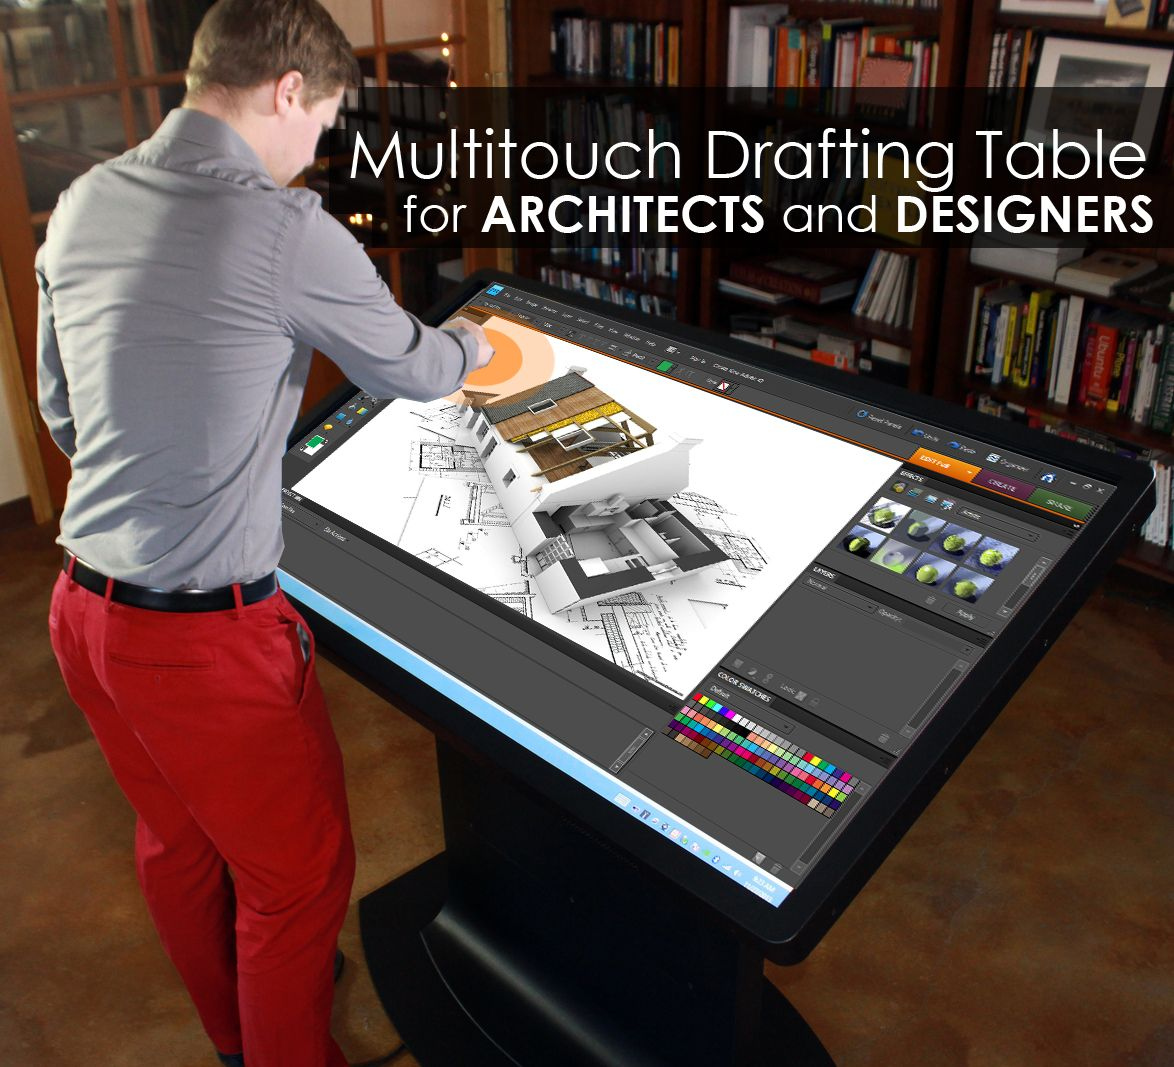 Multitouch Drafting Table For ARCHITECTS, DESIGNERS And